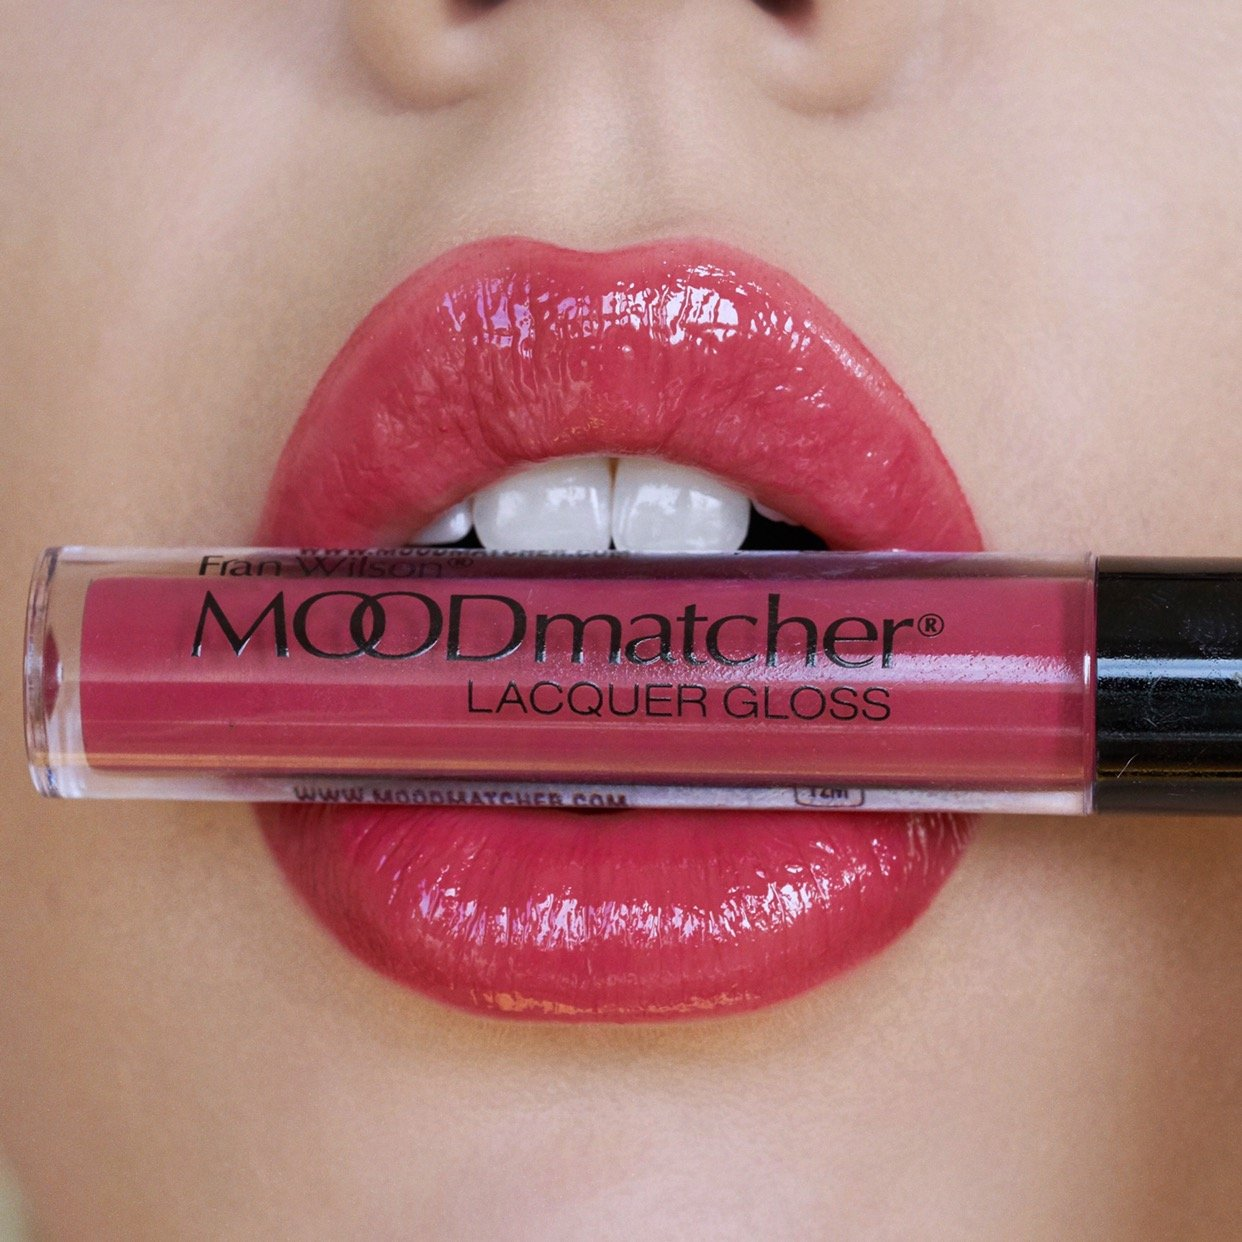 MOODmatcher Lacquer Gloss Vivacious Violet - Fran Wilson